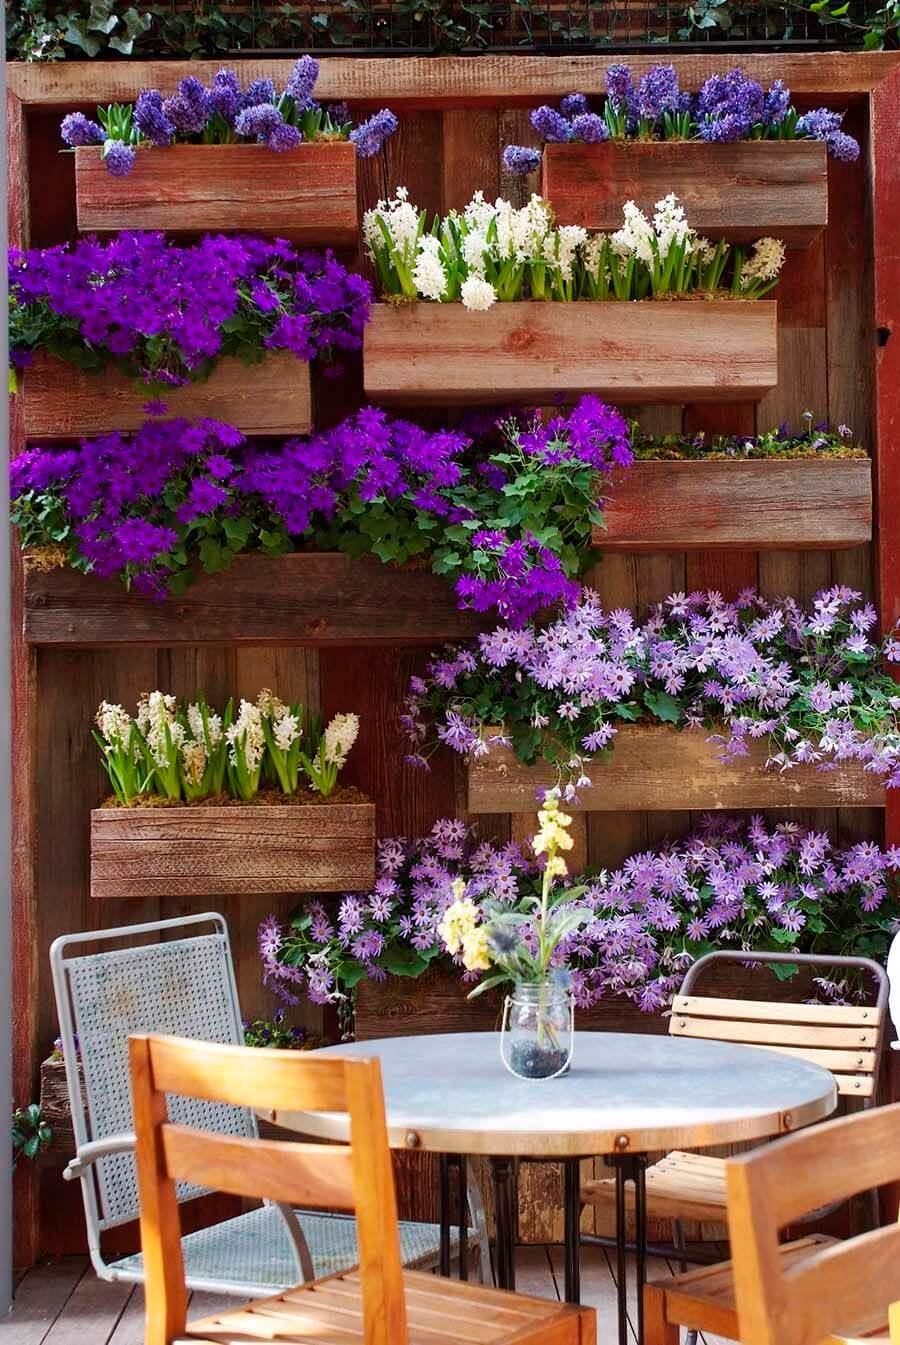 Purple and White Blooms with Wall Boxes